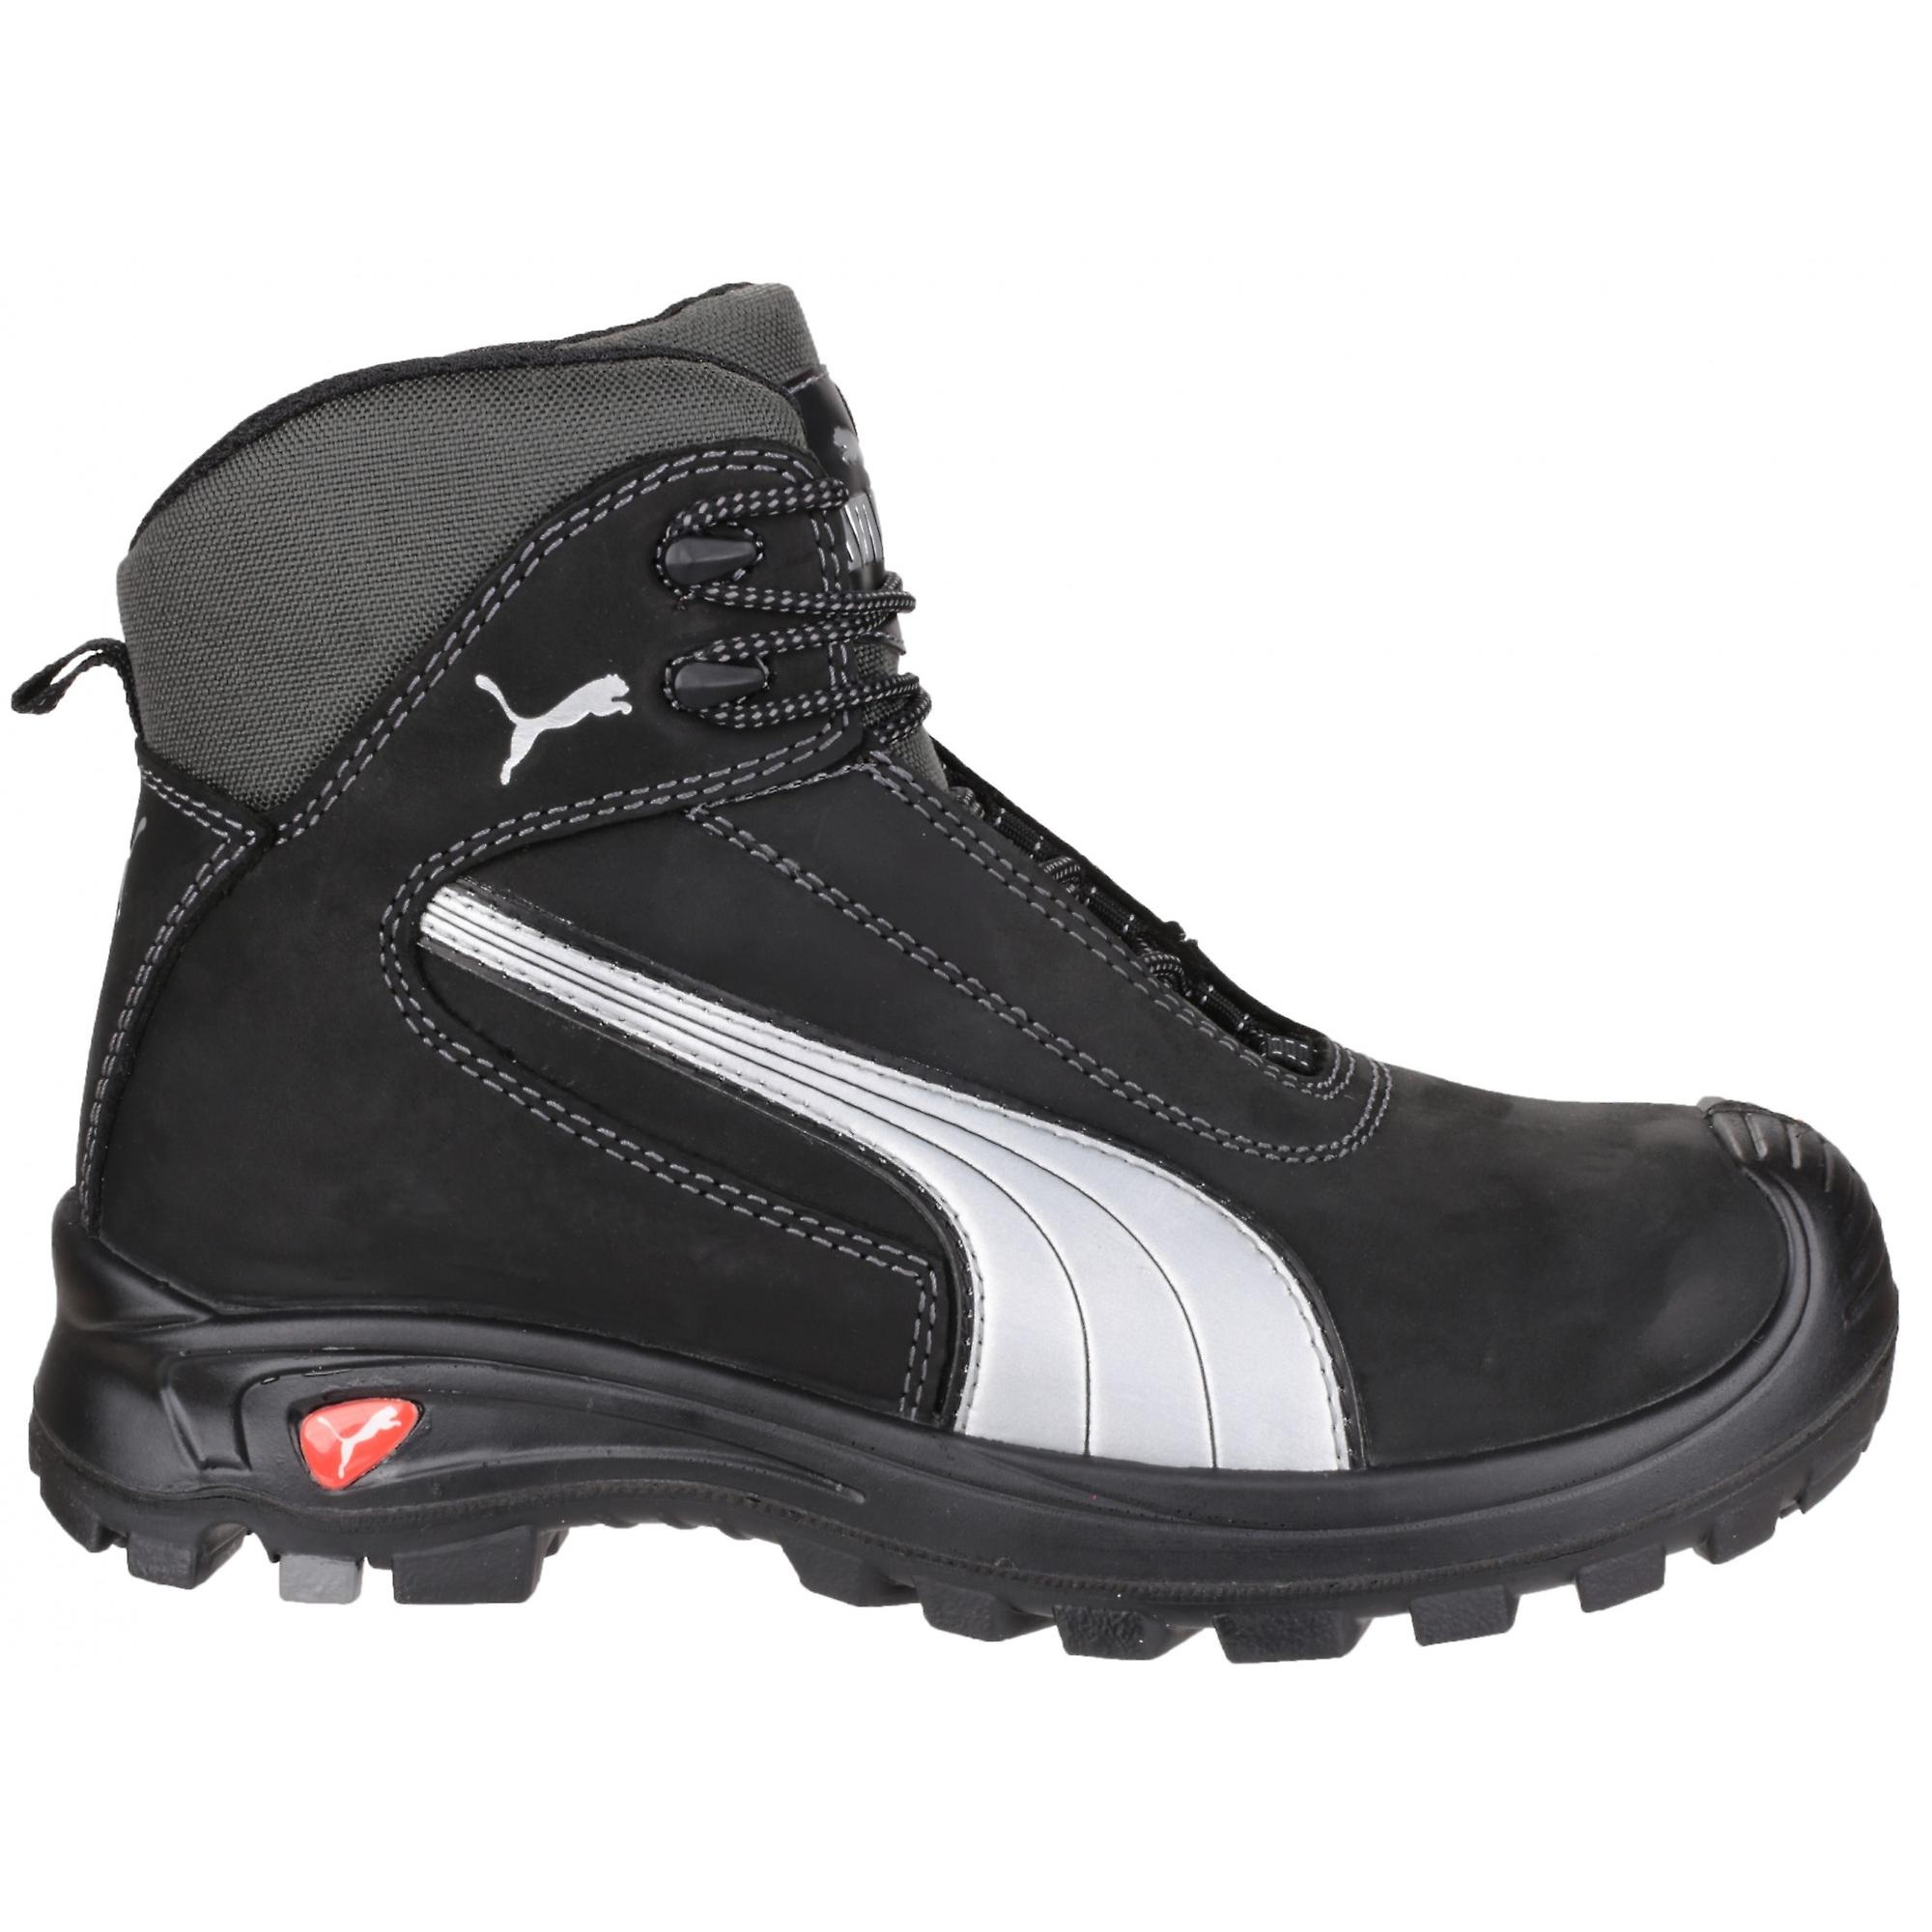 Puma Safety Cascades Mens Safety Boots